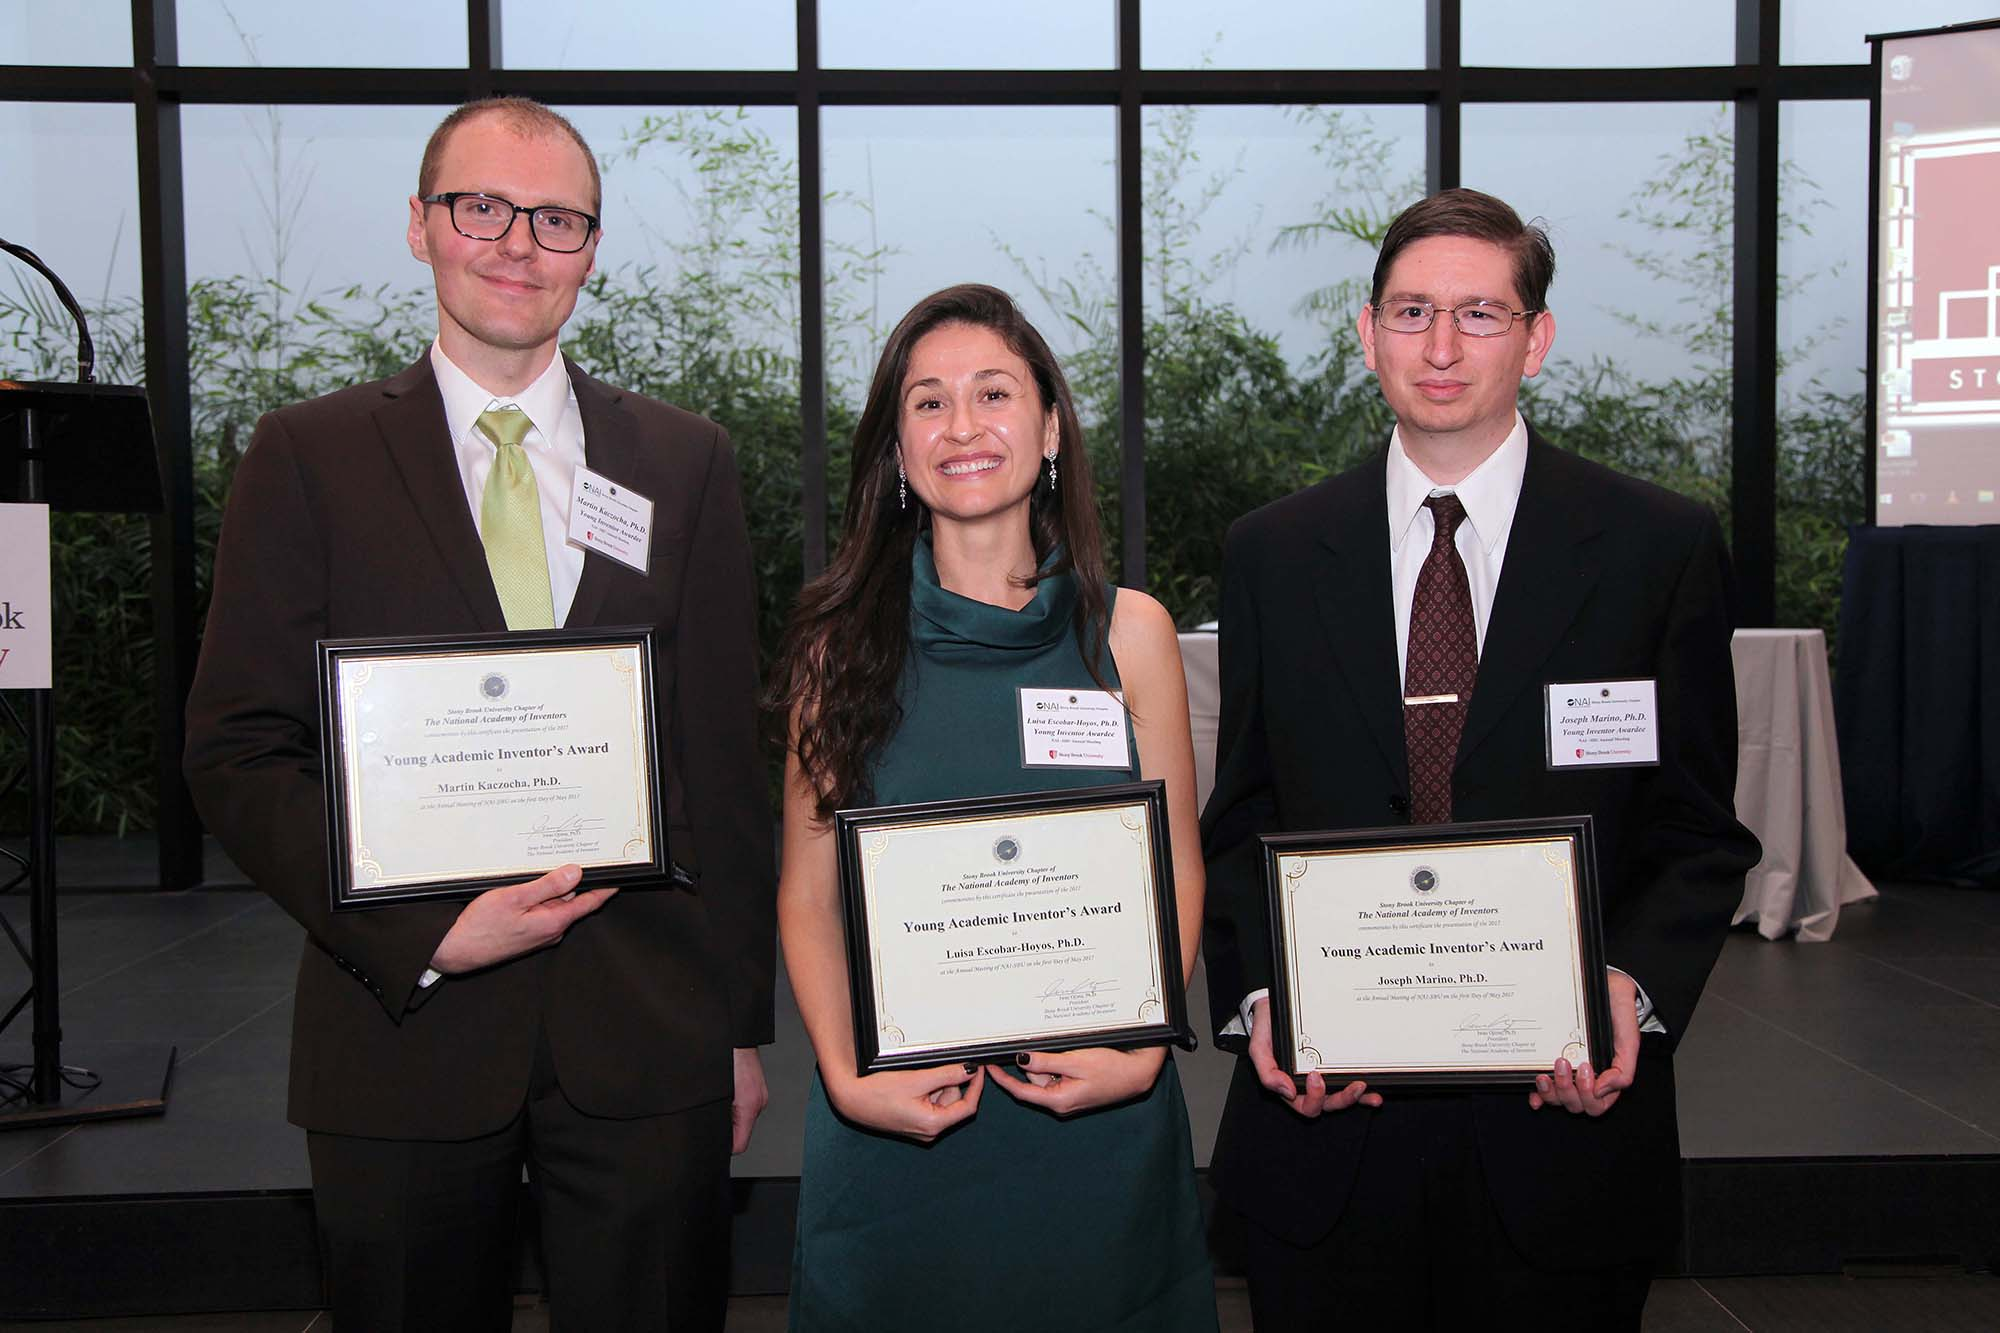 Winners of the Young Inventor's Award, from left: Martin Kaczocha, Luisa Escobar-Hoyos and Joseph Marino